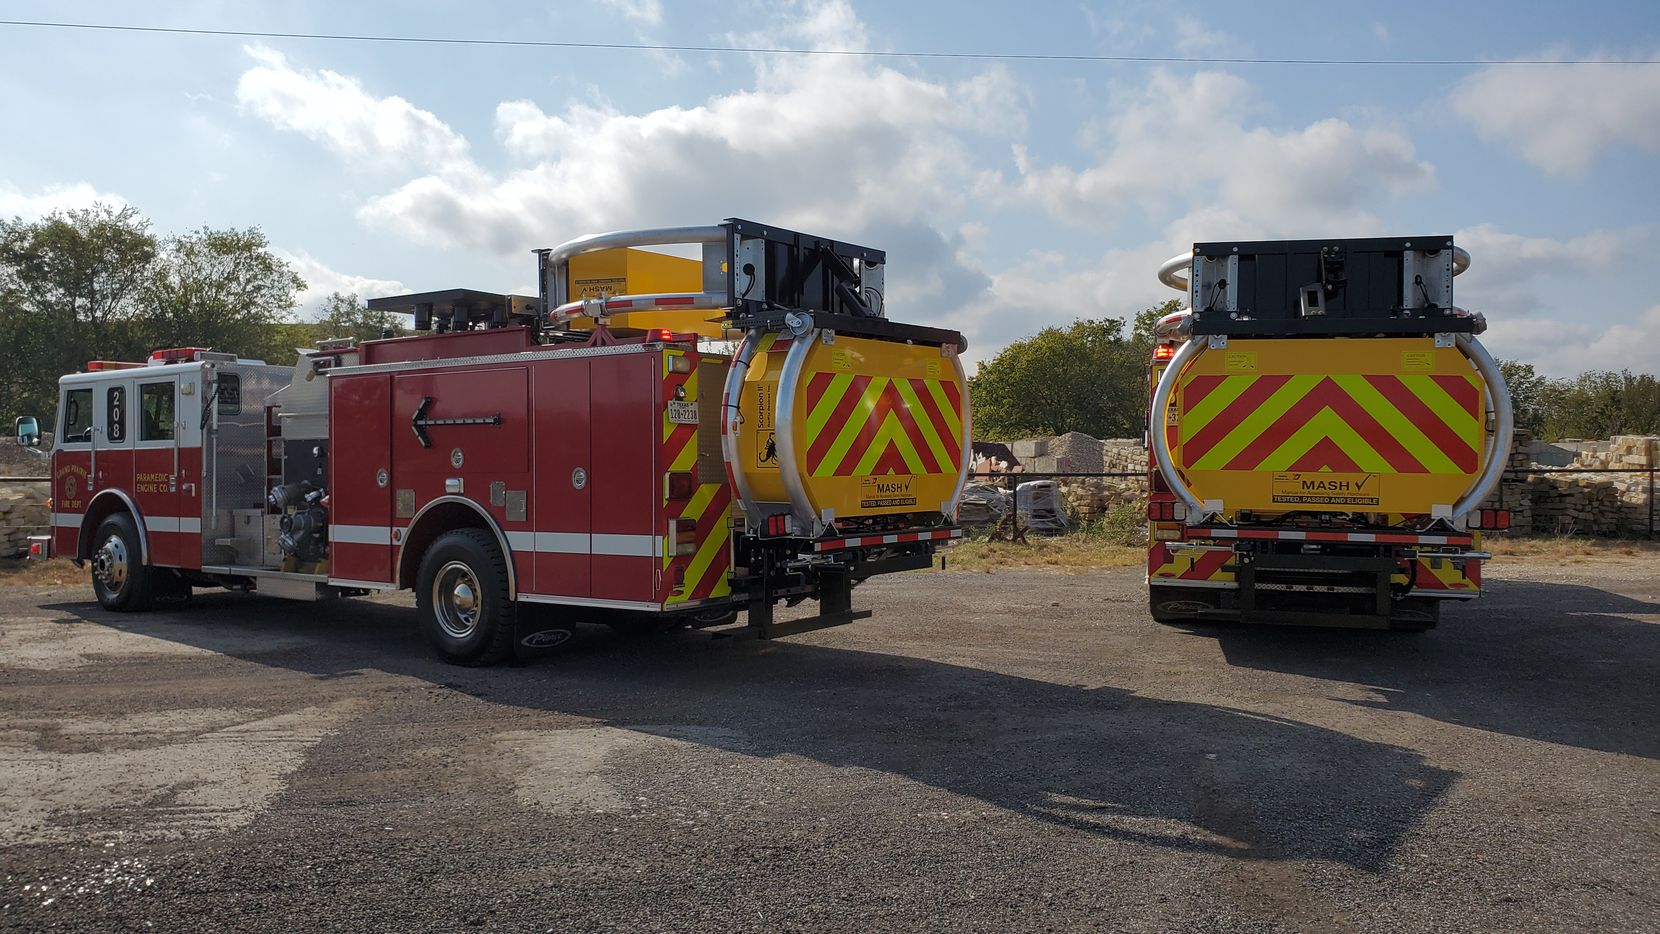 Two GPFD trucks will be outfitted with truck-mounted attenuators (TMAs).